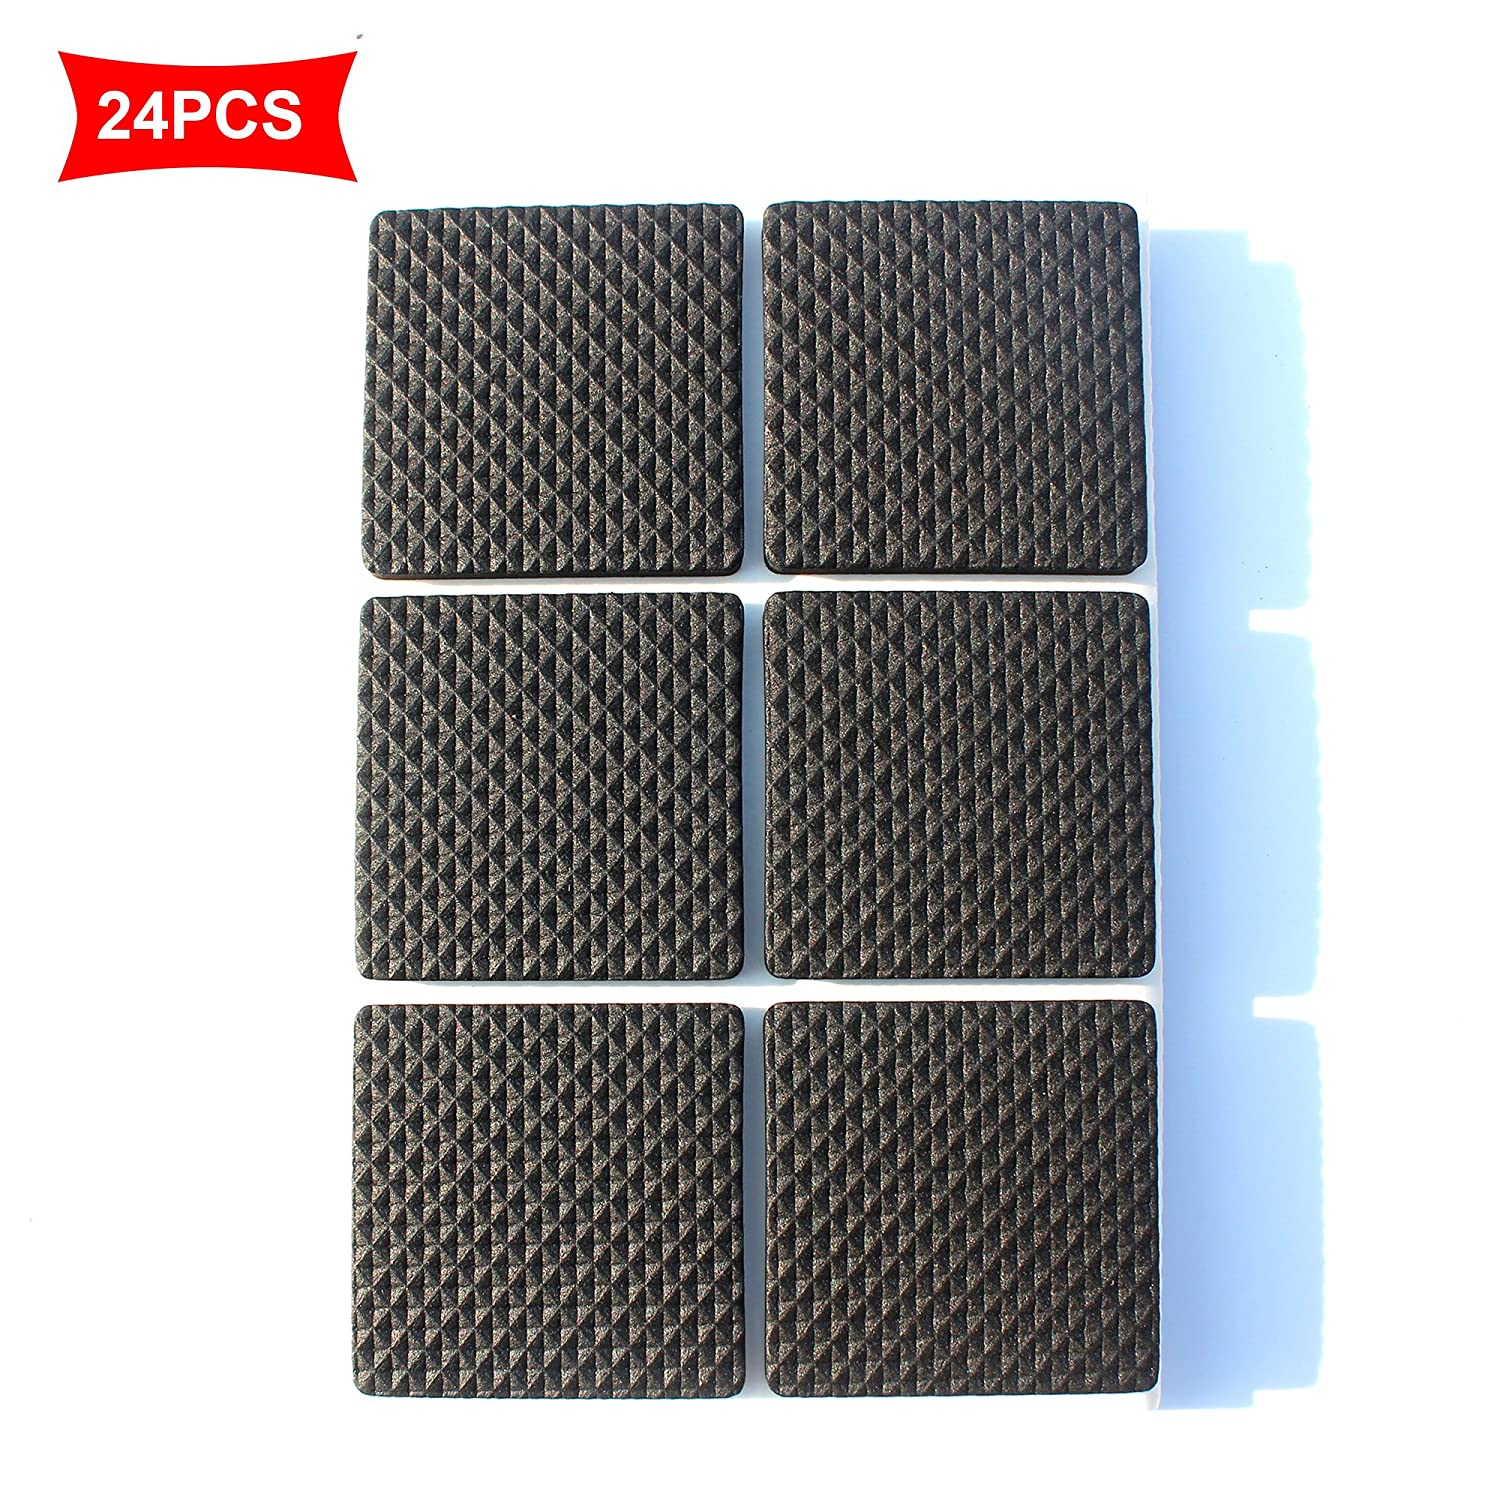 Premium Furniture Pads, Heavy Duty Self Stick Furniture Felt Pads For Hardwood Floors & Noise Dampening Clear Rubber Bumper Pads (Square 4.6CM 24PCS) LLRY